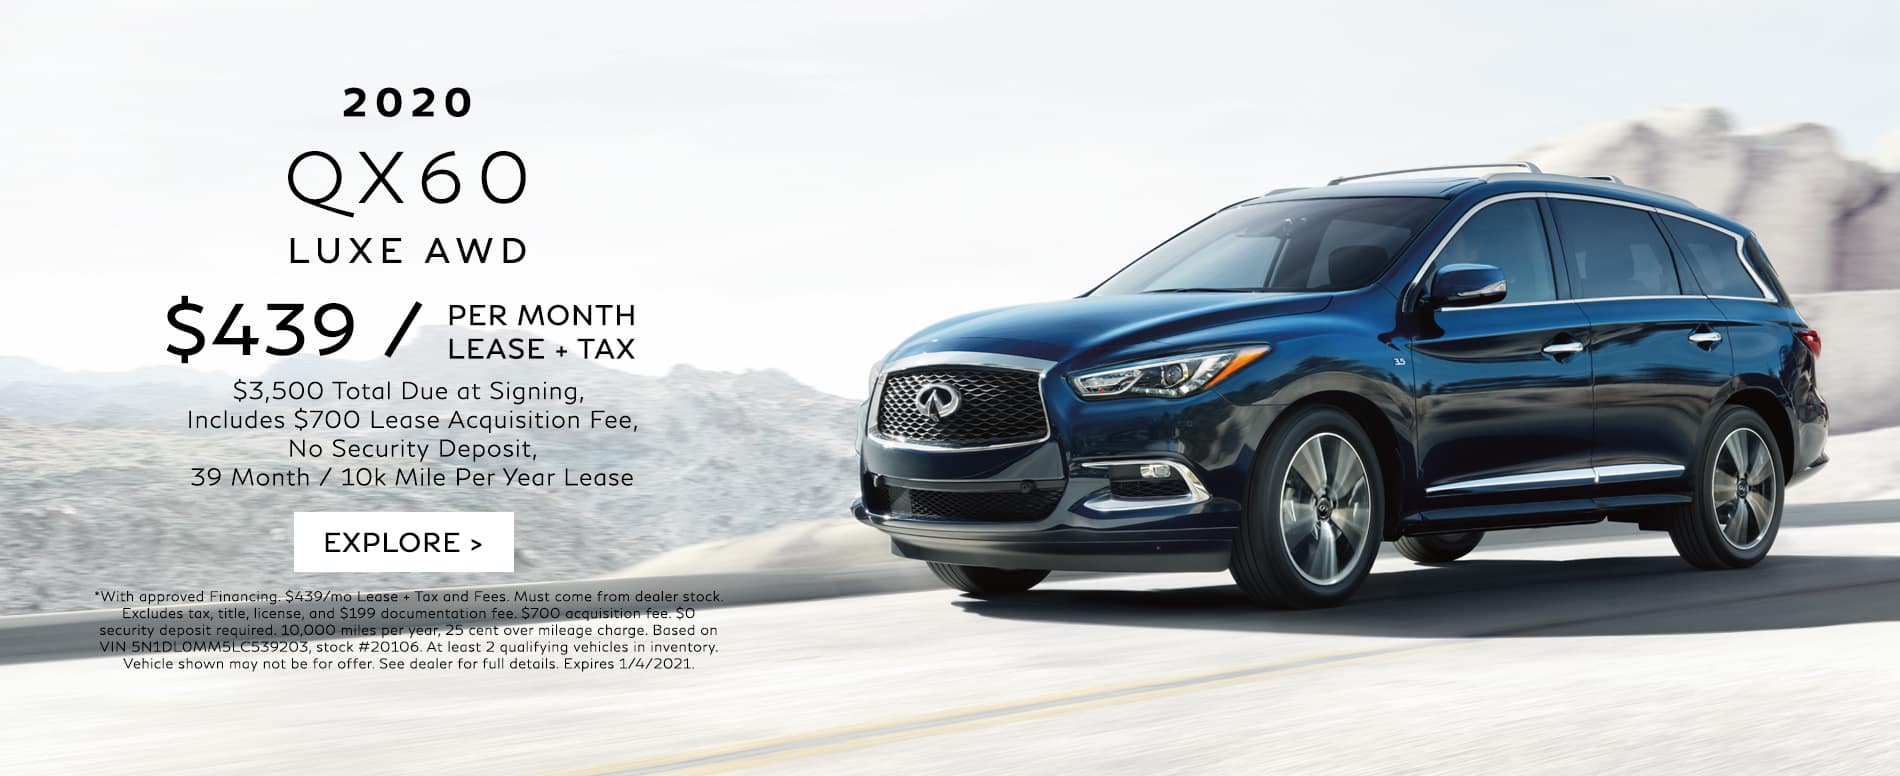 Lease a 2020 QX60 for $439/mo